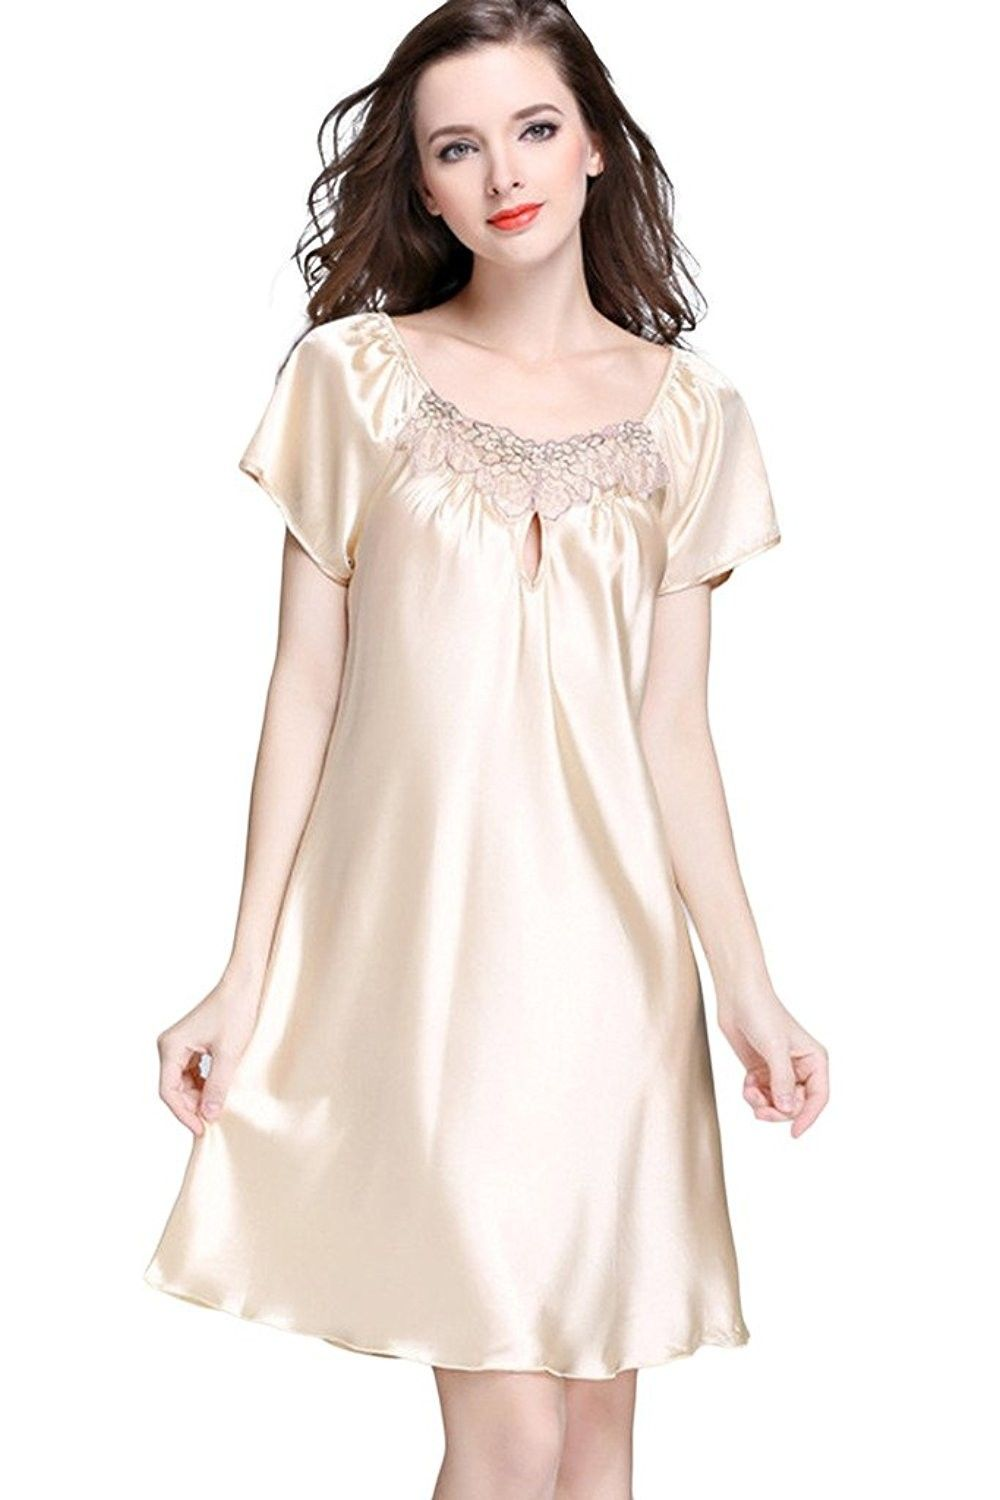 1f168fb213 Women s Lace Crew Neck Nightgown Short Sleeve Sleep Shirt Pajamas -  Champagne - CV17YSGHUOH